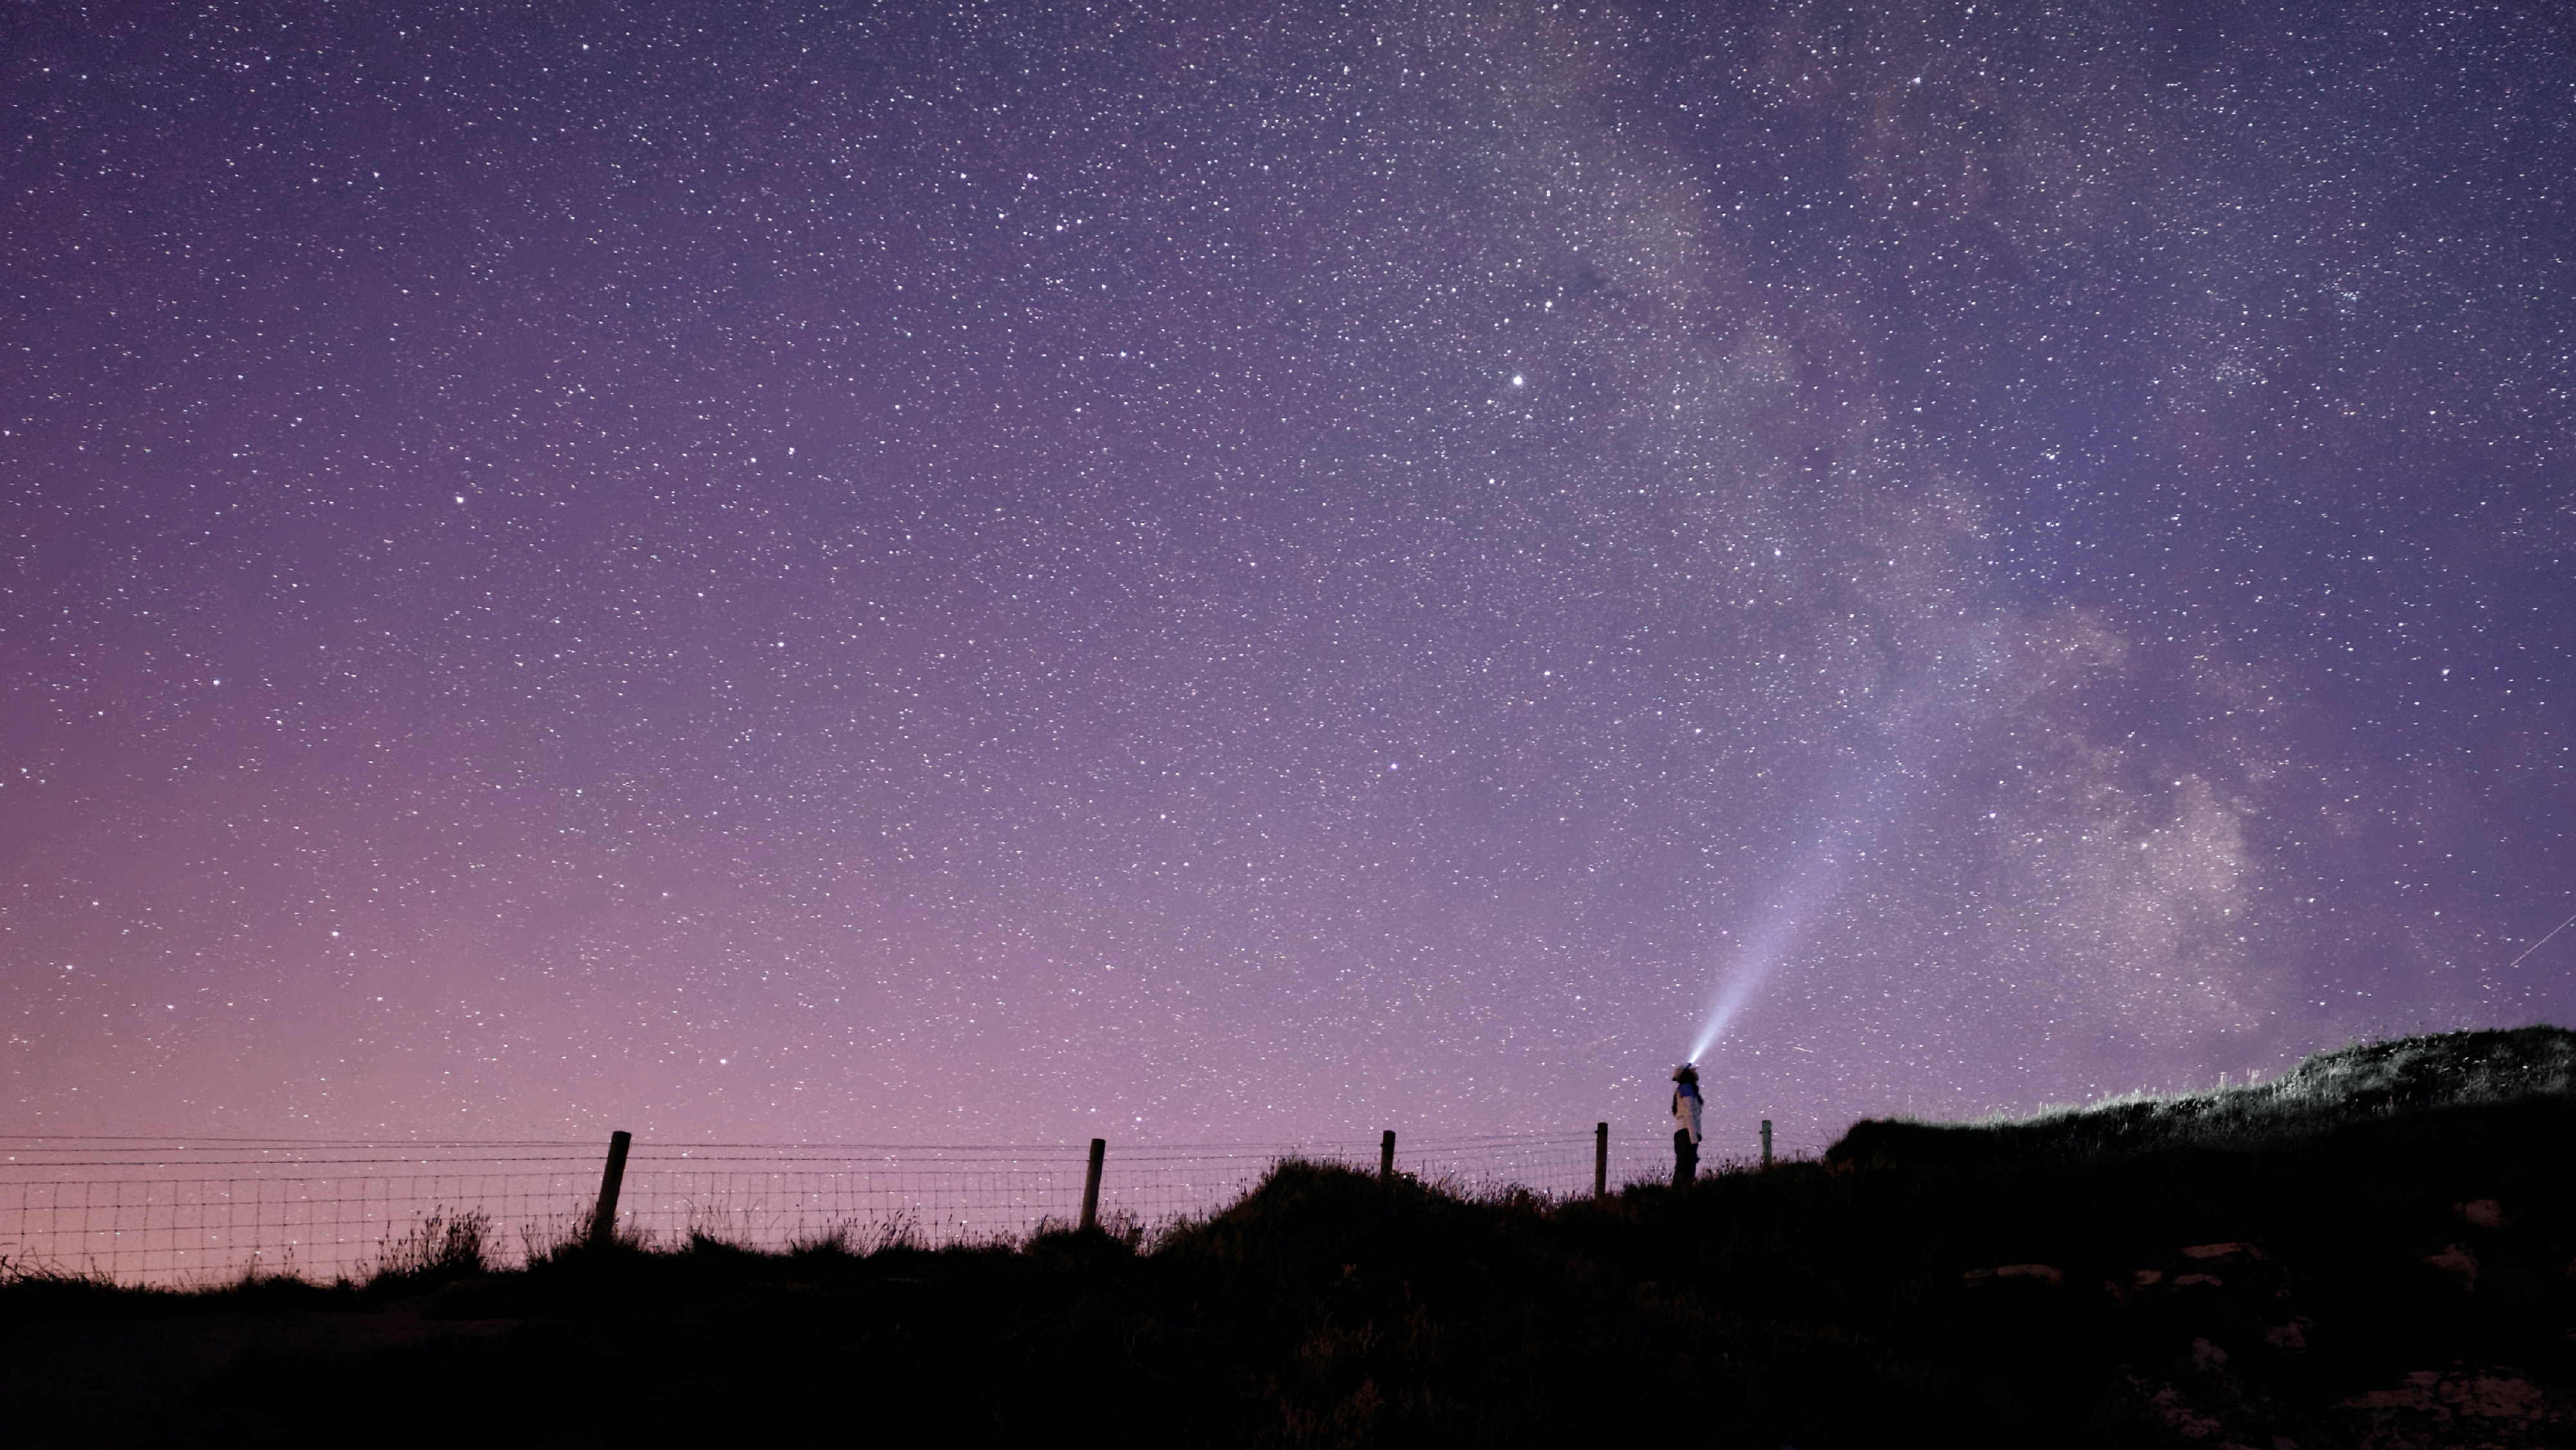 A woman standing in a field at night under a purple sky that shows the milky way at the Cliffs of Moher